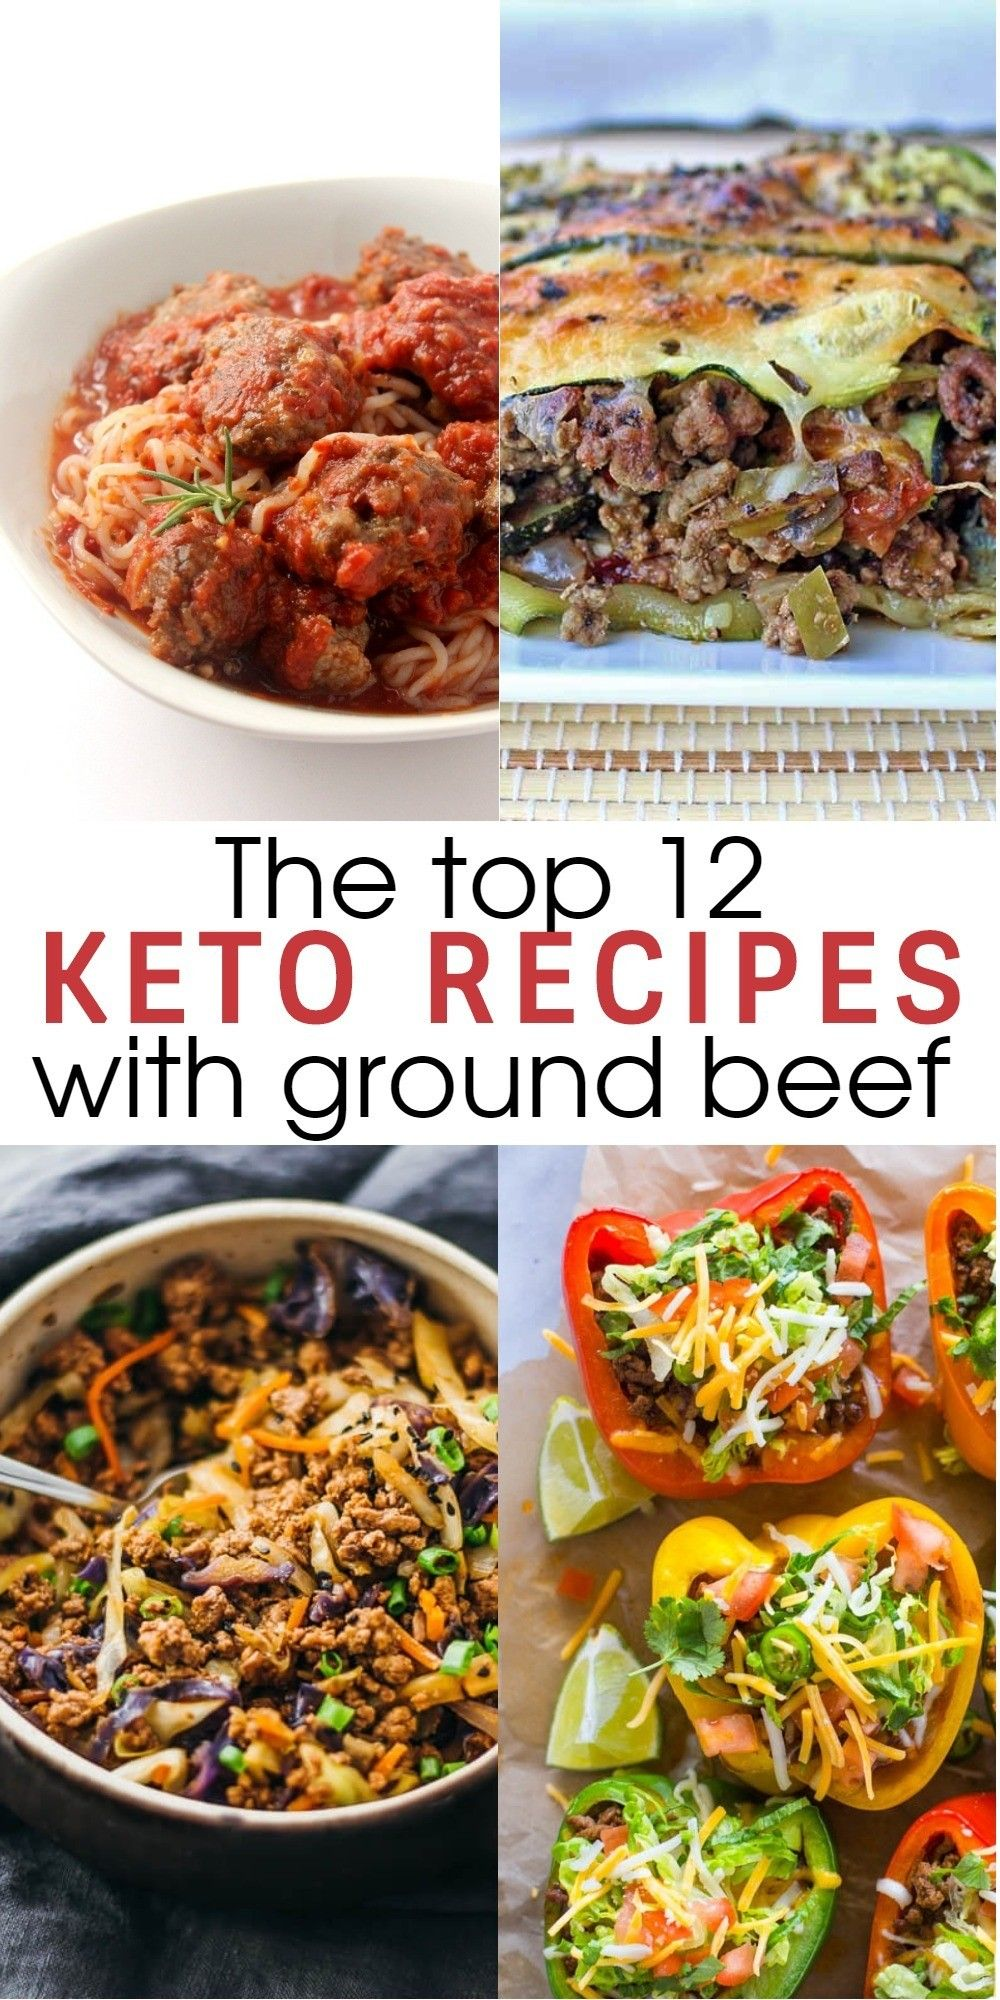 12 Flavorful And Easy Keto Recipes With Ground Beef To Try Foodeasy Foodrecipesideas In 2020 Ground Beef Keto Recipes Keto Recipes Easy Beef Recipes For Dinner